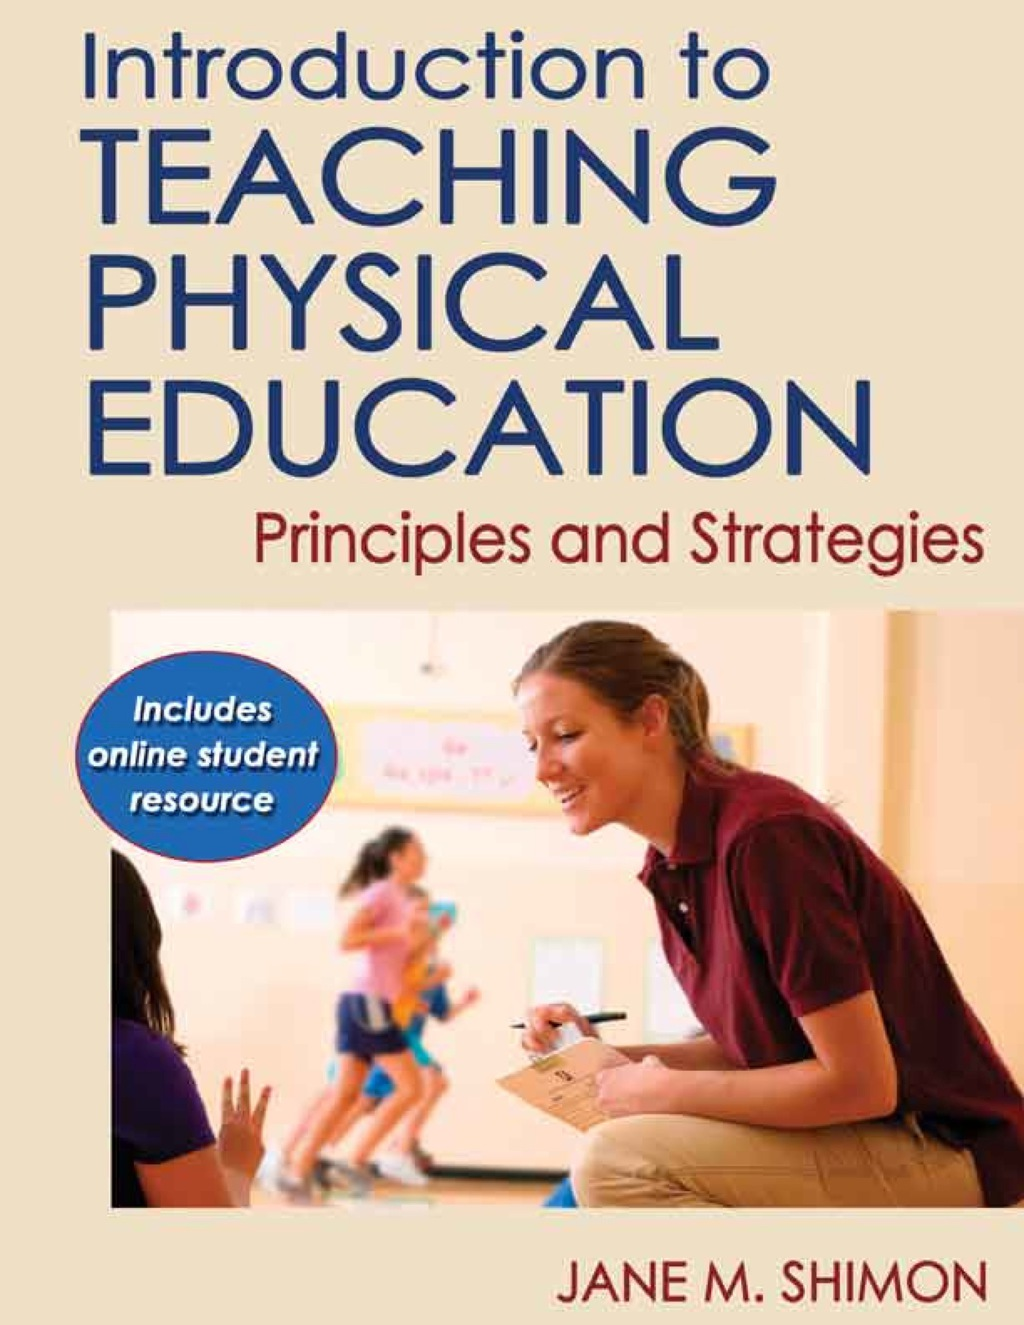 Introduction to Teaching Physical Education With Online Student Resource (ebook)